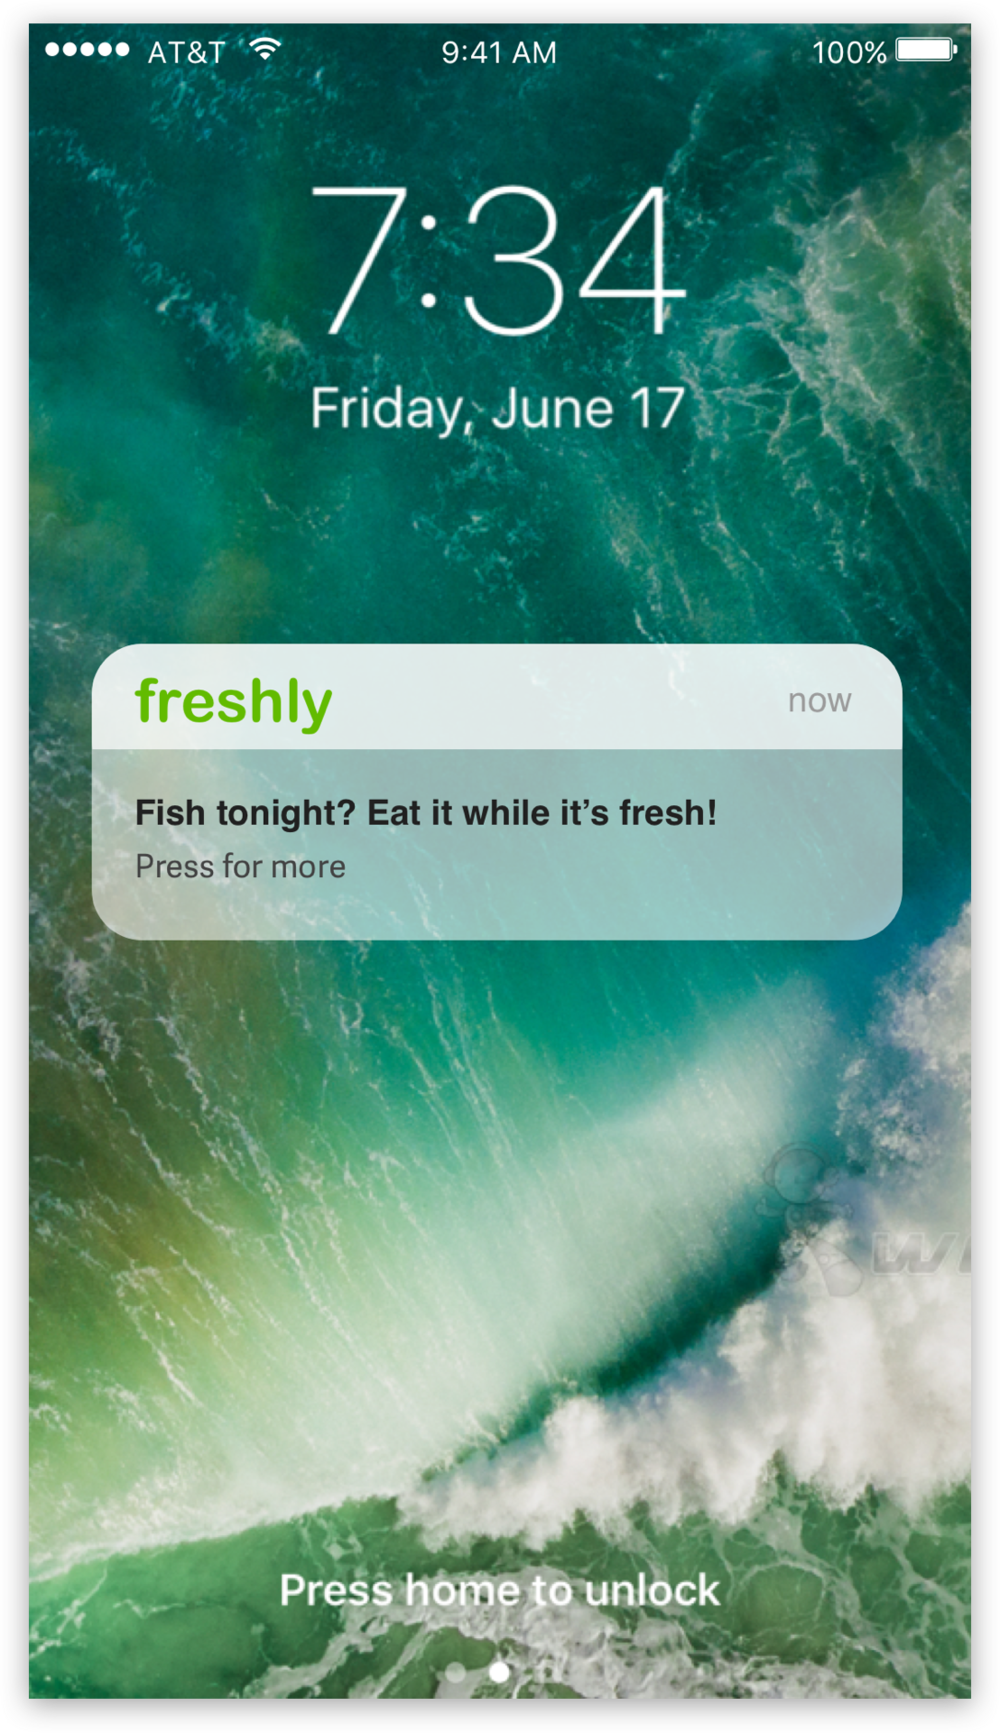 Freshly sends friendly reminders through push notifications. Prompting users on which products need to be cooked or eaten as soon as possible.